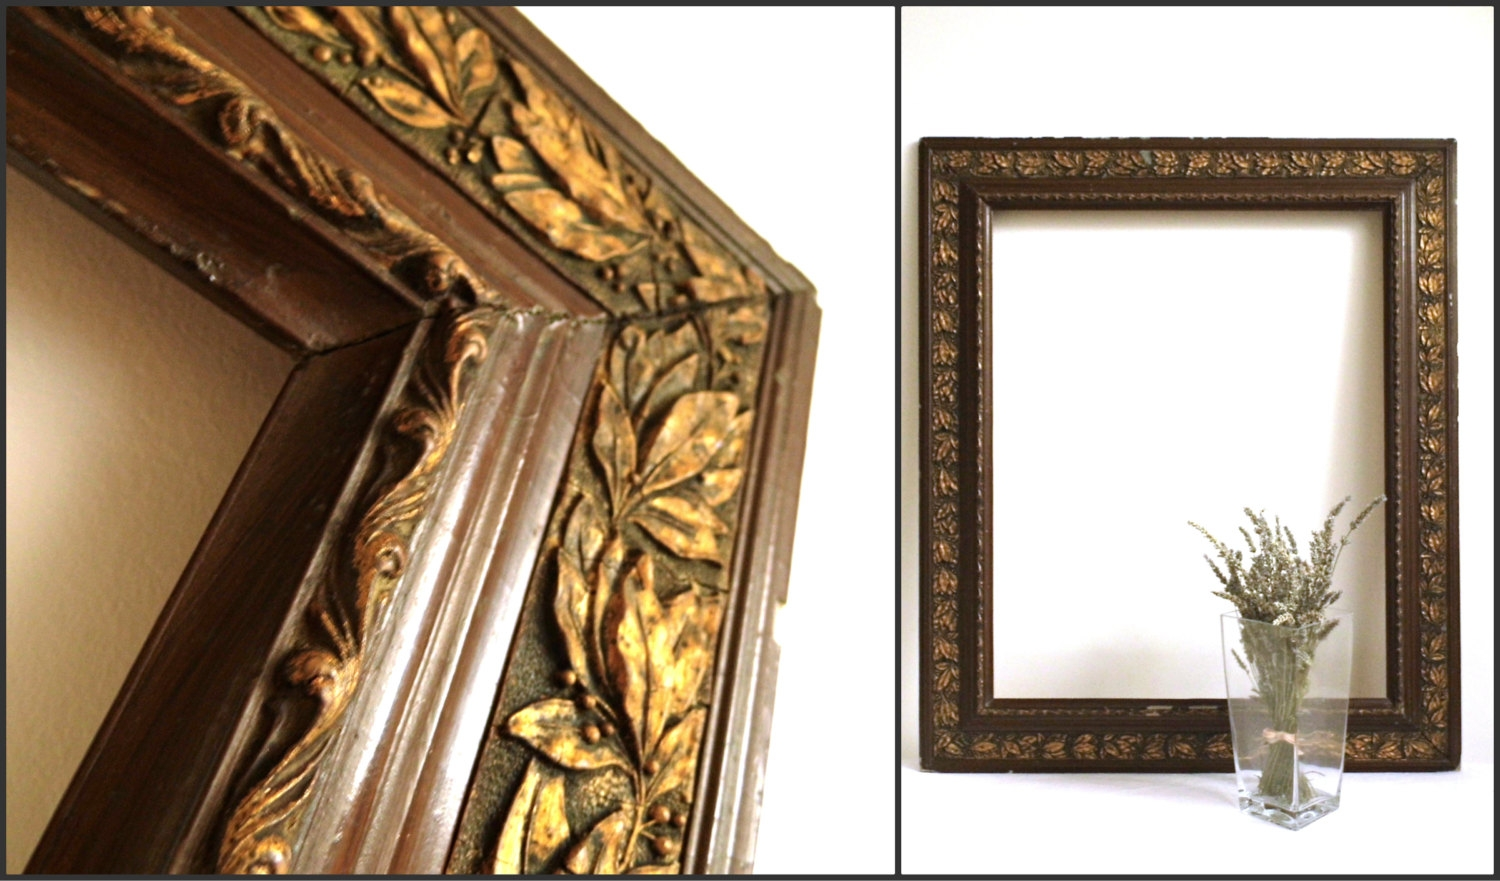 Reclaimed Wood Mirror Small Square Mirror Bathroom Mirror: Large Ornate Mirrors For Wall